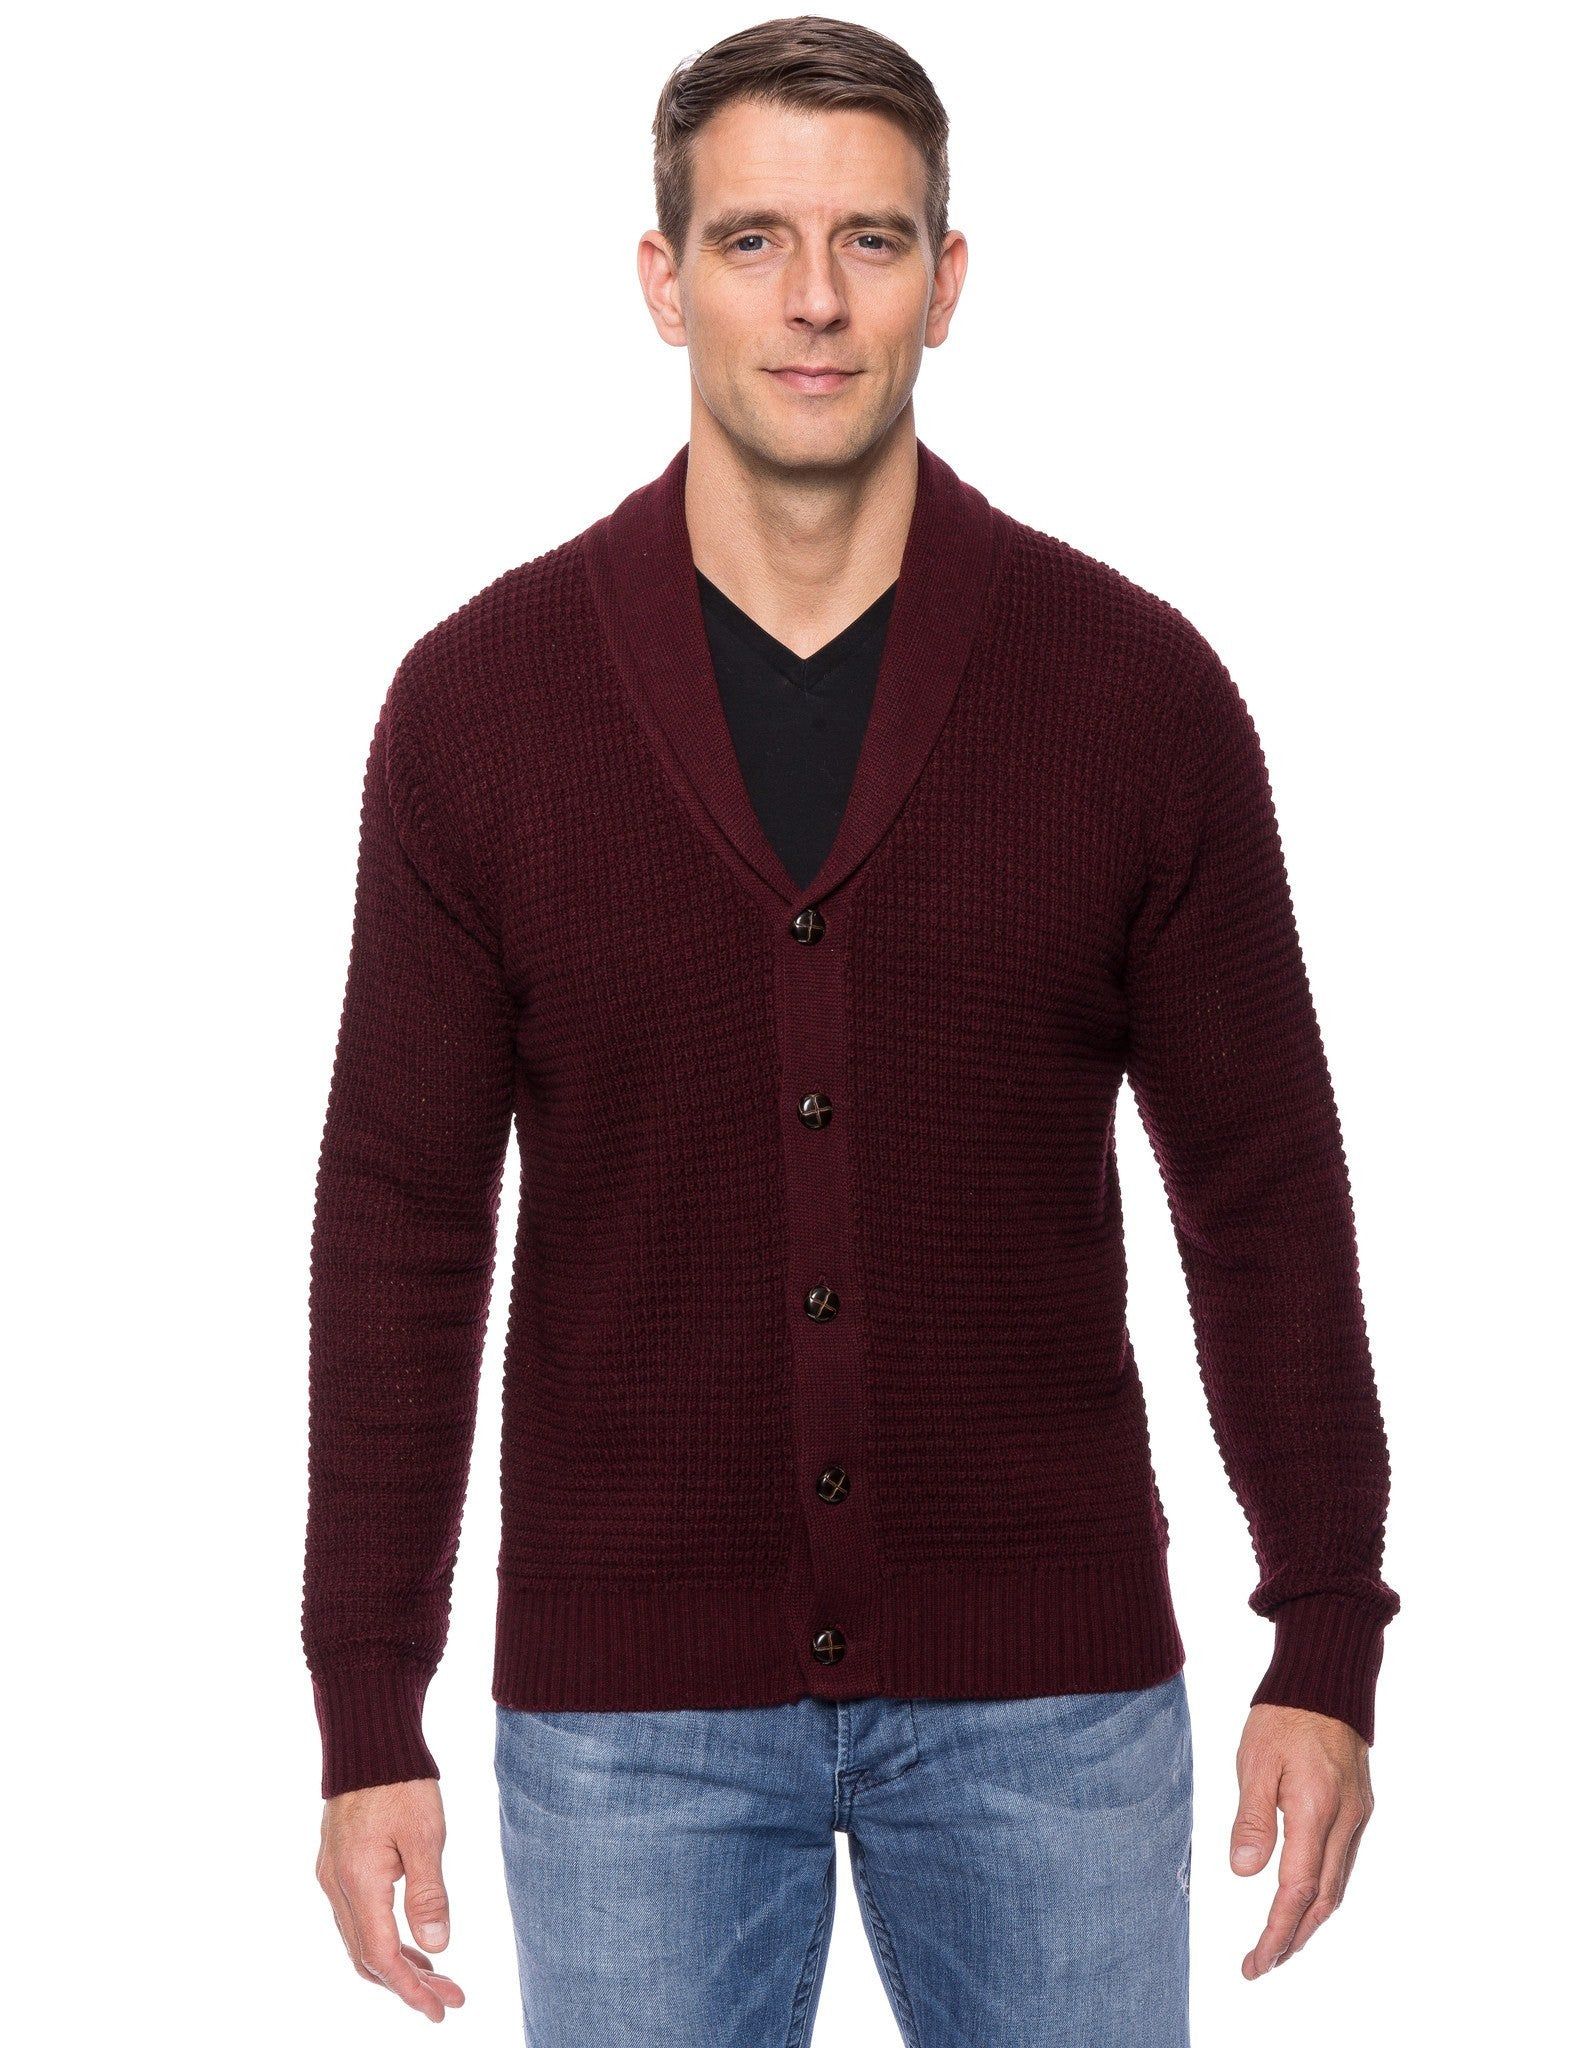 Box-Packaged Tocco Reale Men's Wool Blend Shawl Collar Cardigan in Waffle Stitch